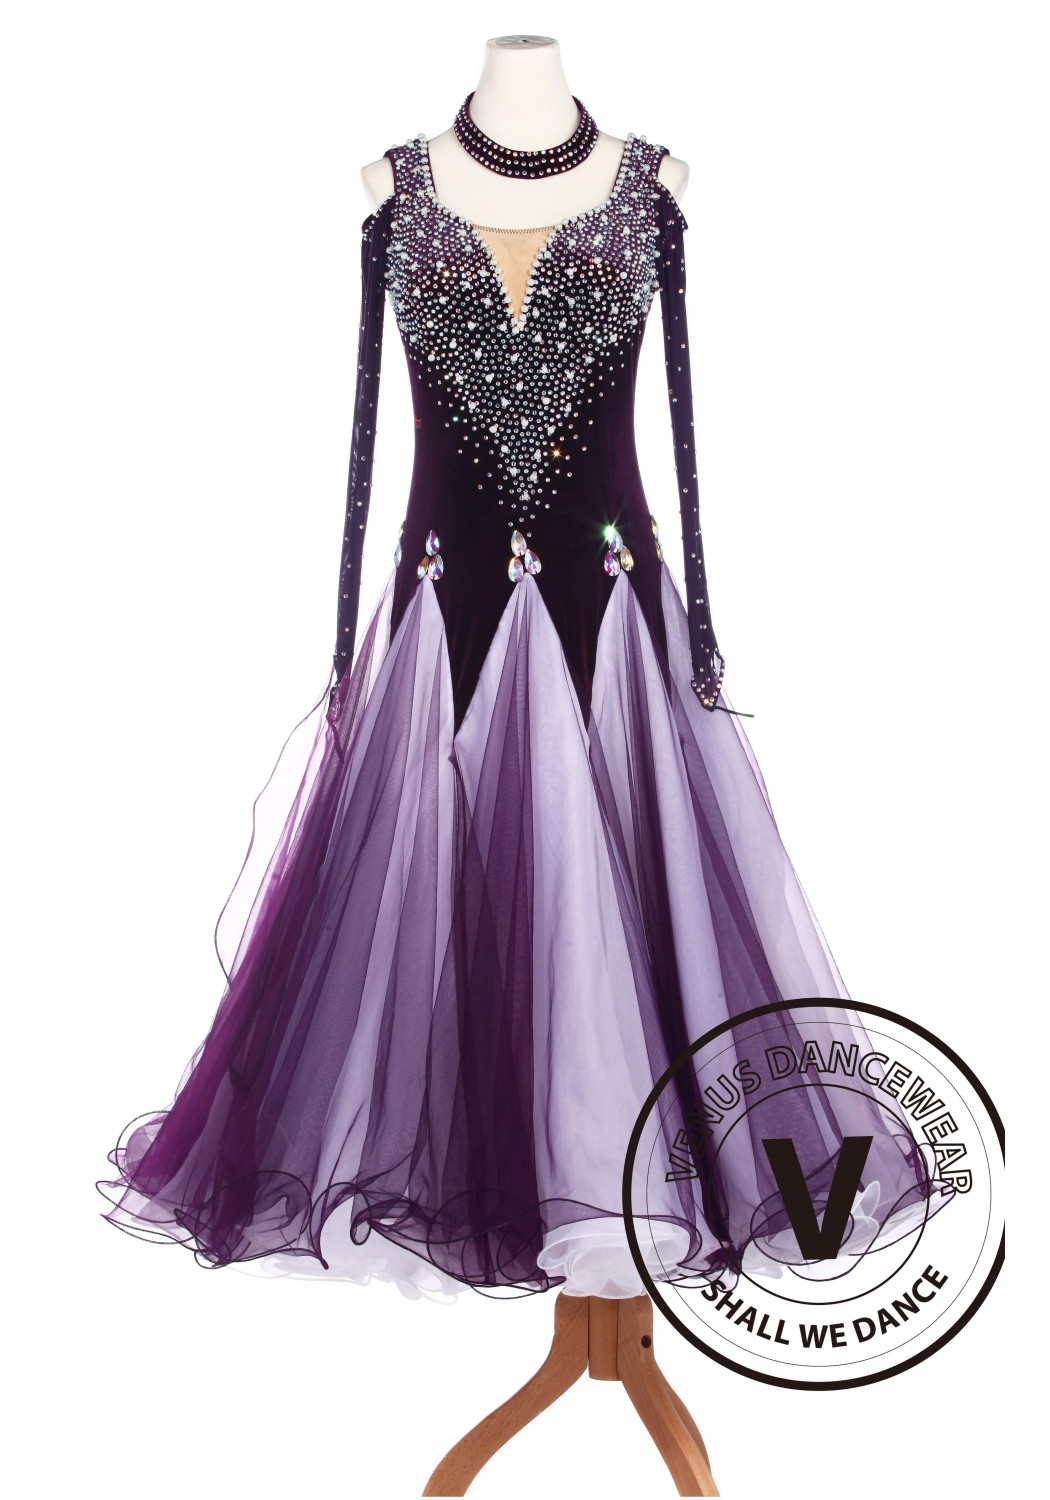 Roy Purple Ballroom Smooth Dance Competition Dress